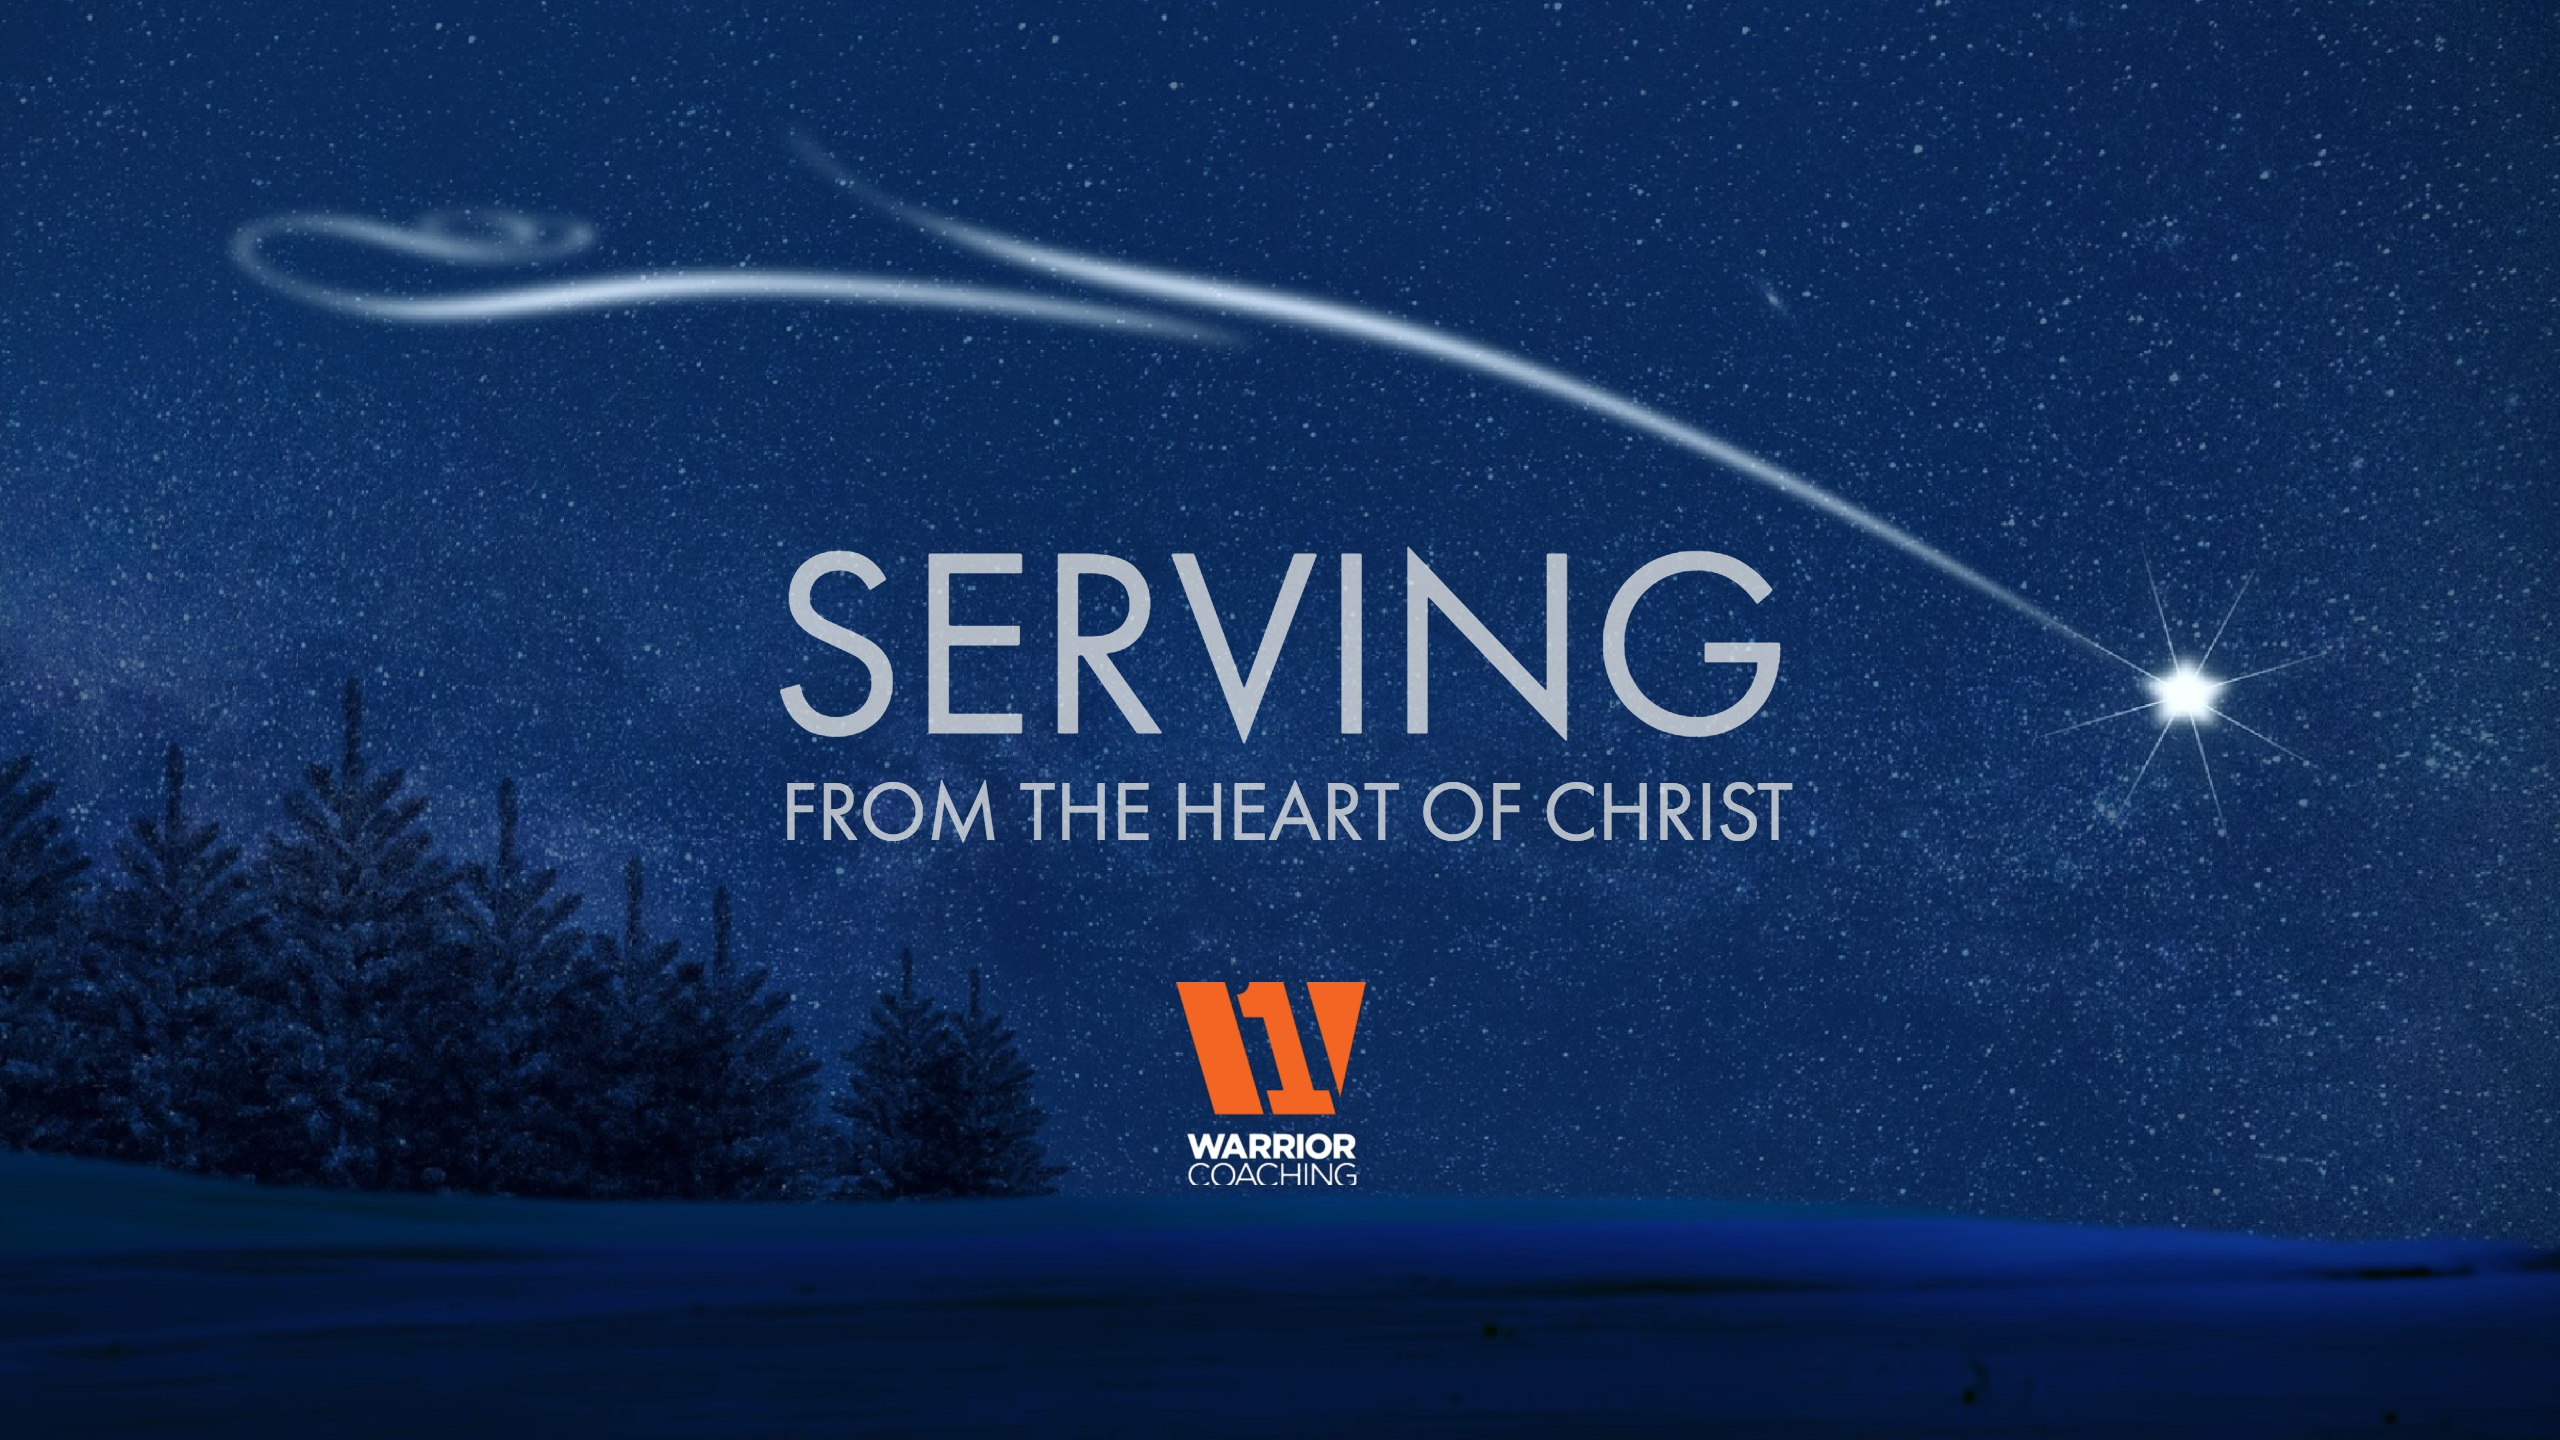 Serving From the Heart of Christ